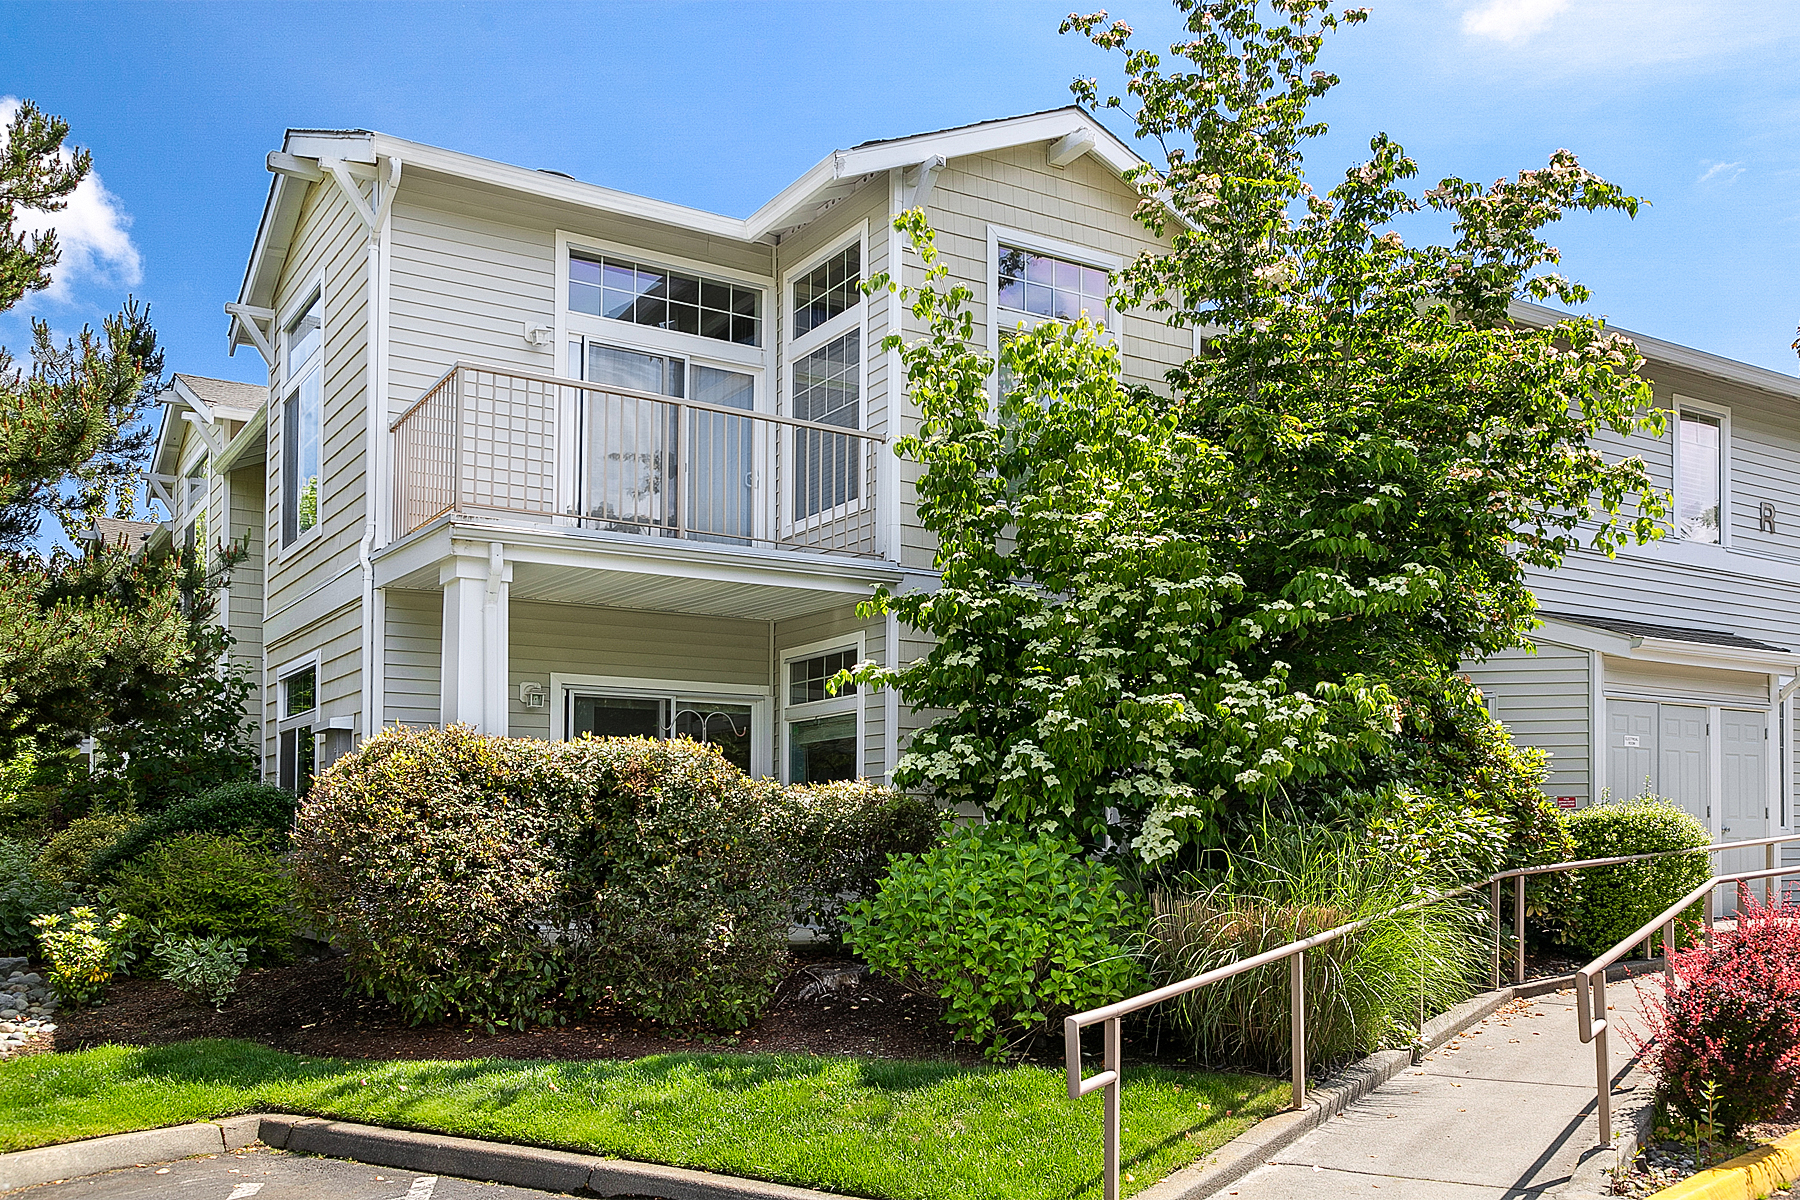 Condominiums por un Venta en Immaculate Snohomish Condo 14007 69th Dr SE, #R1, Snohomish, Washington 98296 Estados Unidos